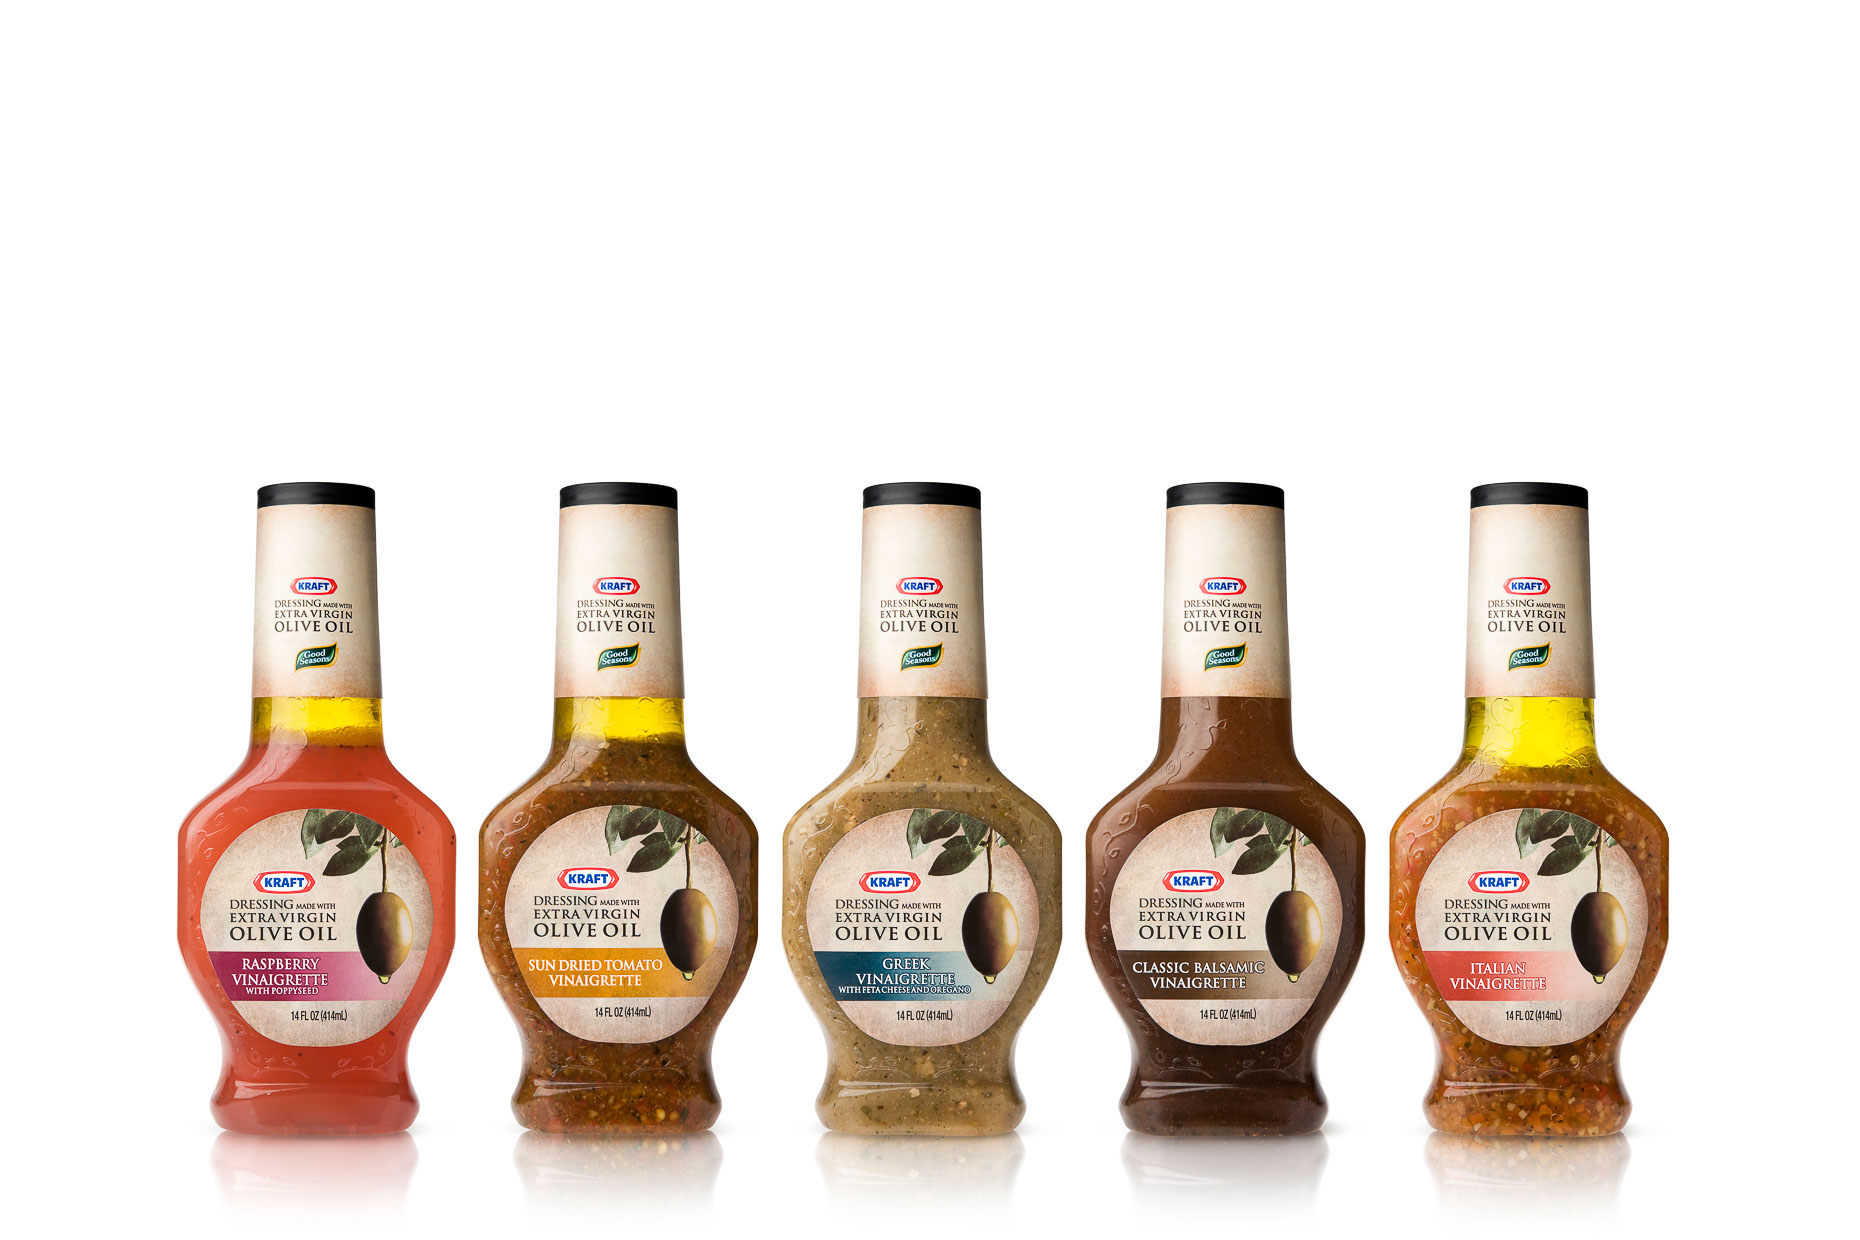 Kraft - Salad Dressing made with Extra Virgin Olive Oil - Package - Spring Design Partners